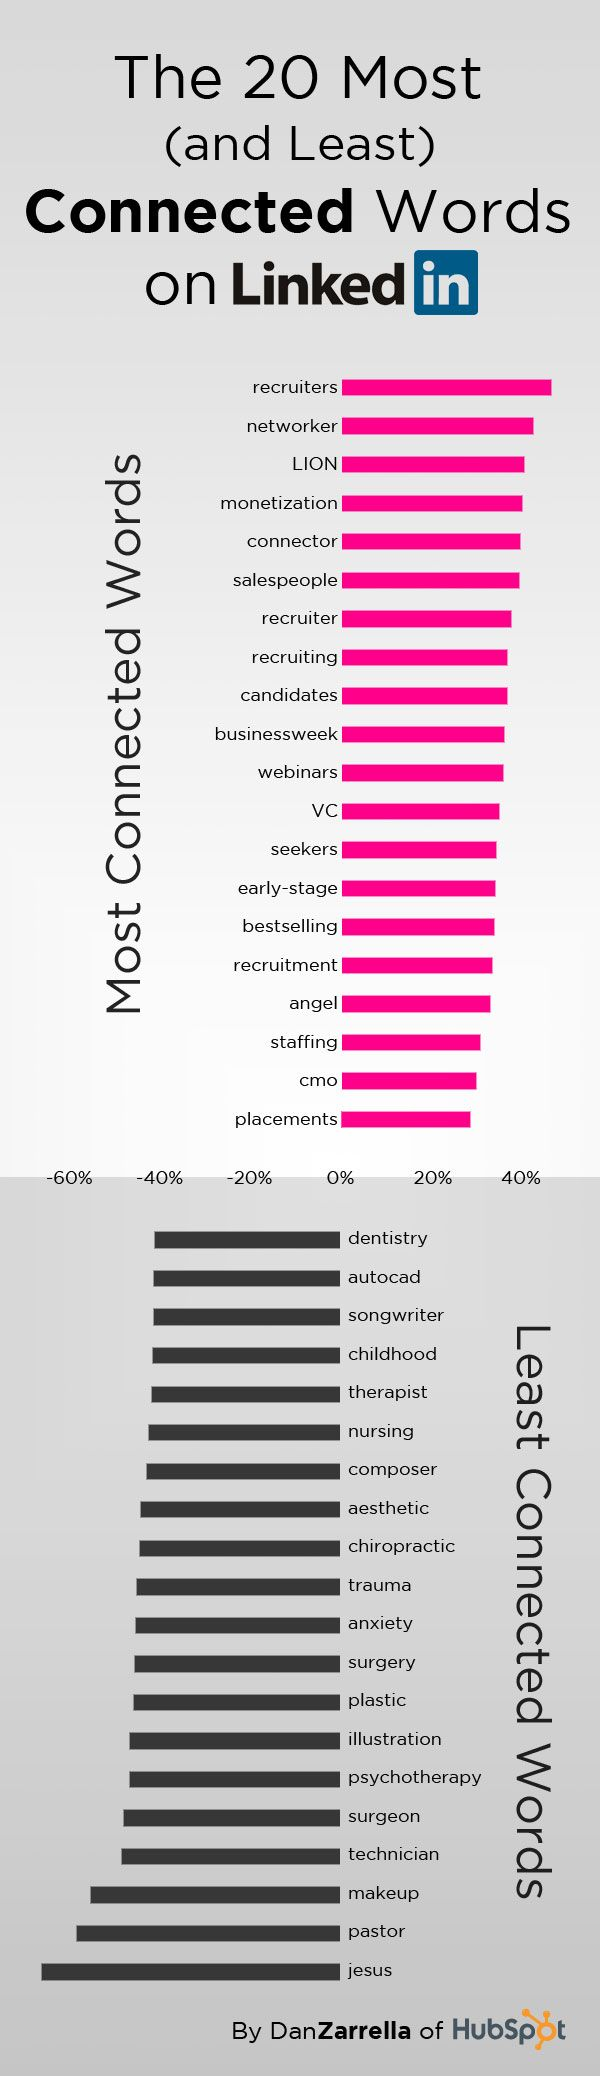 The 20 Most (and Least) Connected Words on LinkedIn #six40marketing | For more digital marketing & social media tips follow @six40marketing | linkedin.com/in/melindardavis | six40marketing.com